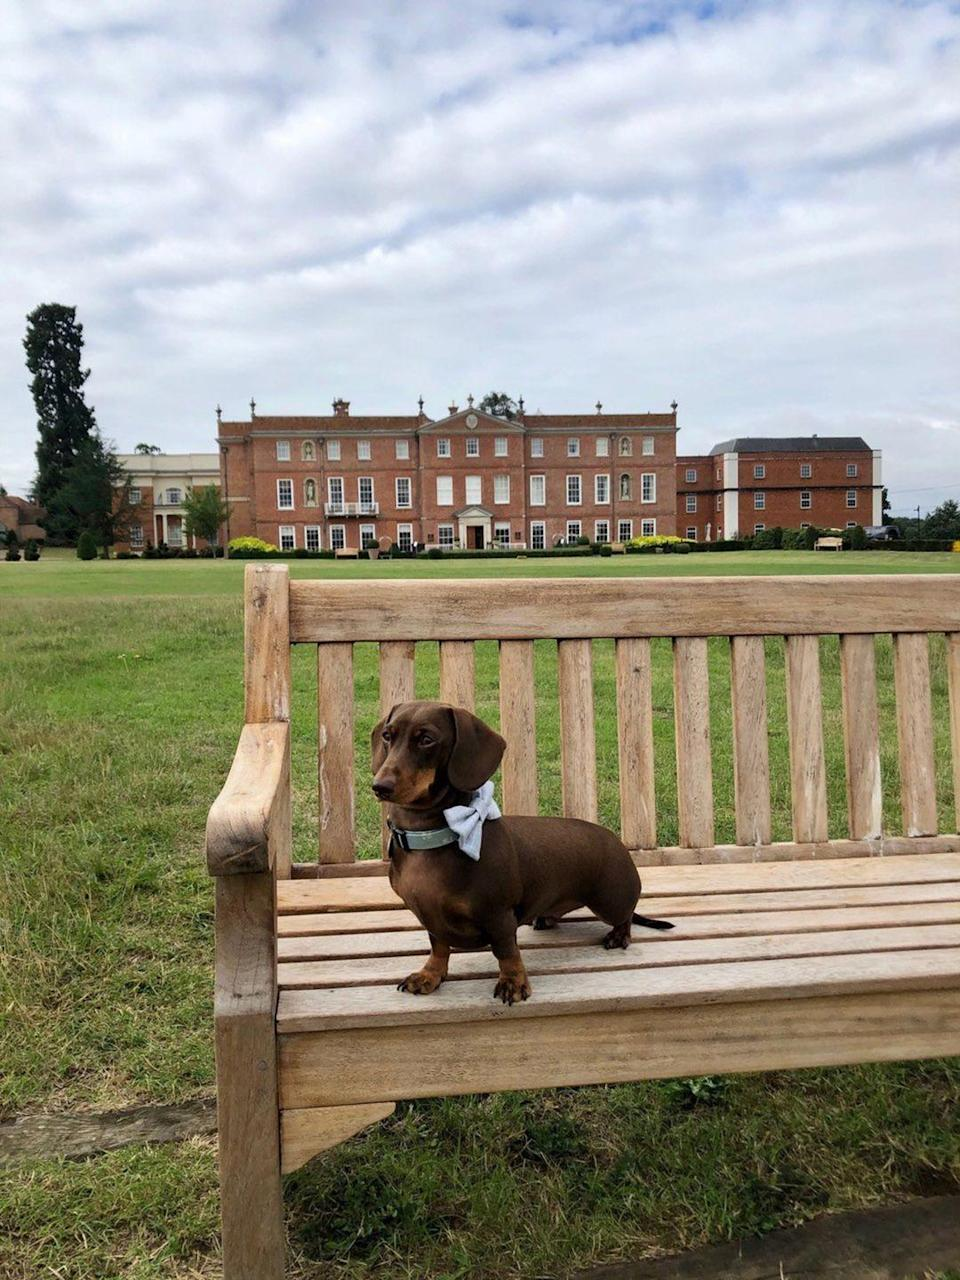 """<p>At Hampshire's Four Seasons outpost, dogs have no fewer than 500 acres of countryside to roam across – the grand grounds include a lake, lawn, shooting field and a spa set in the stables. Competing in the cuteness ranks are Milo and Dougal, two Shetland-pony inhabitants of the on-site equestrian centre. Furry companions will be given a bed and spring water, and the doorman has bags ready for walkies. Pets are welcome in the Wild Carrot bar – but they'll have to wait in your room while you tackle the main restaurant's farmers'-market banquet on Sunday afternoons.</p><p>For more information, visit <a href=""""https://www.fourseasons.com/hampshire/"""" rel=""""nofollow noopener"""" target=""""_blank"""" data-ylk=""""slk:fourseasons.com"""" class=""""link rapid-noclick-resp"""">fourseasons.com</a>.</p>"""